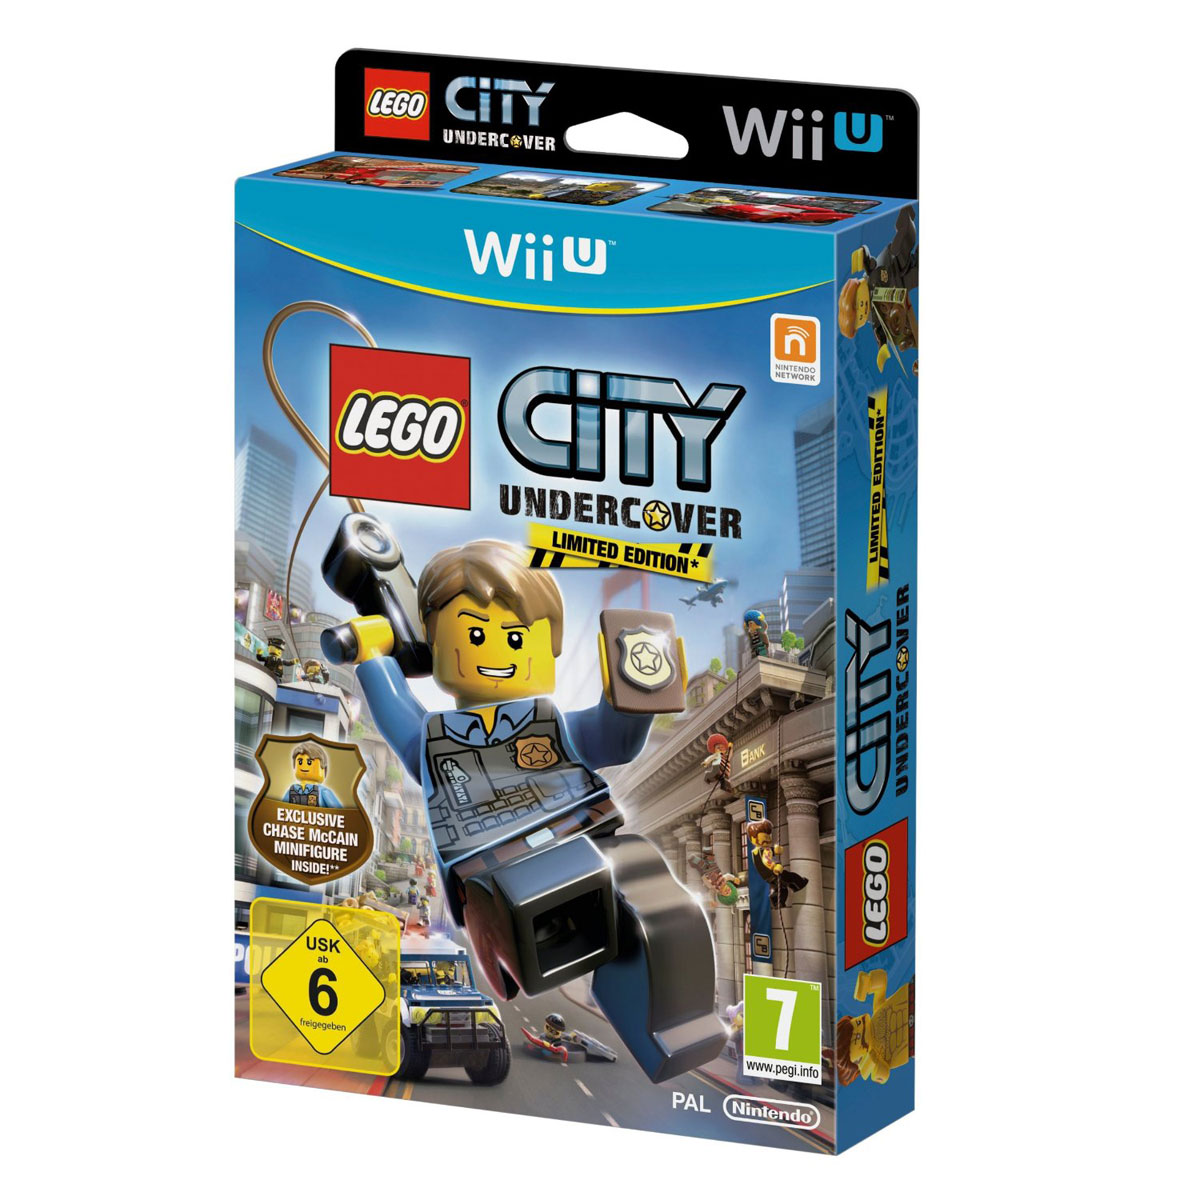 lego city undercover edition limit e wii u jeux wii u nintendo sur ldlc. Black Bedroom Furniture Sets. Home Design Ideas